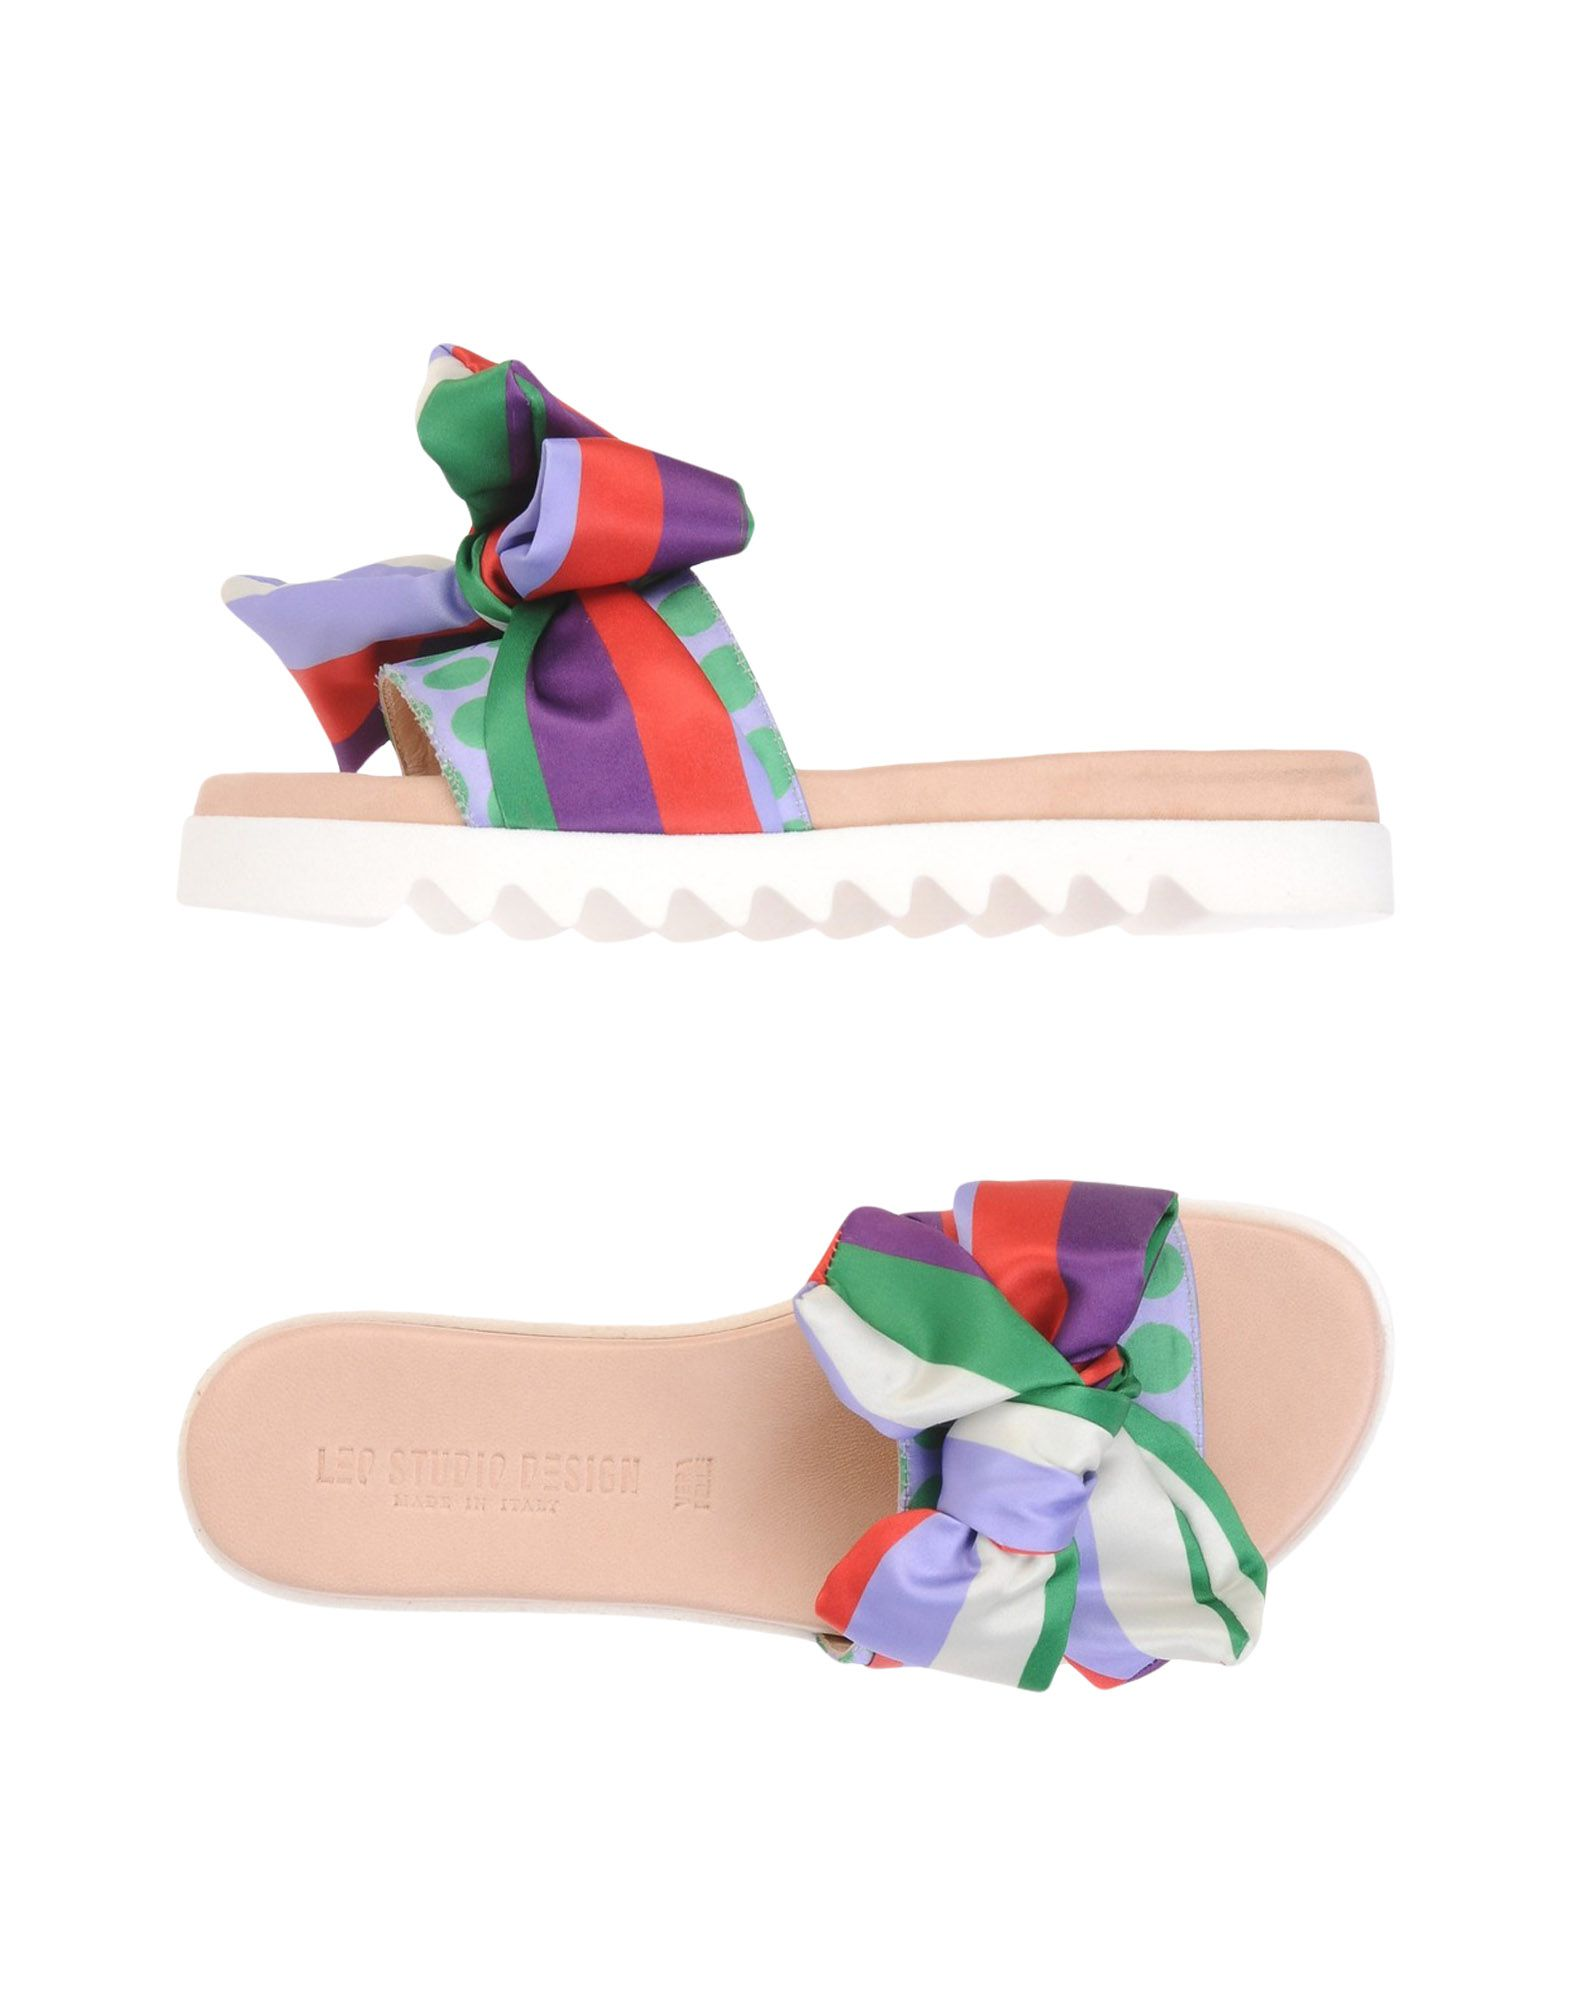 Leo Studio Design Sandals Bow Platform Slide - Sandals Design - Women Leo Studio Design Sandals online on  United Kingdom - 11457431SE 6676a1